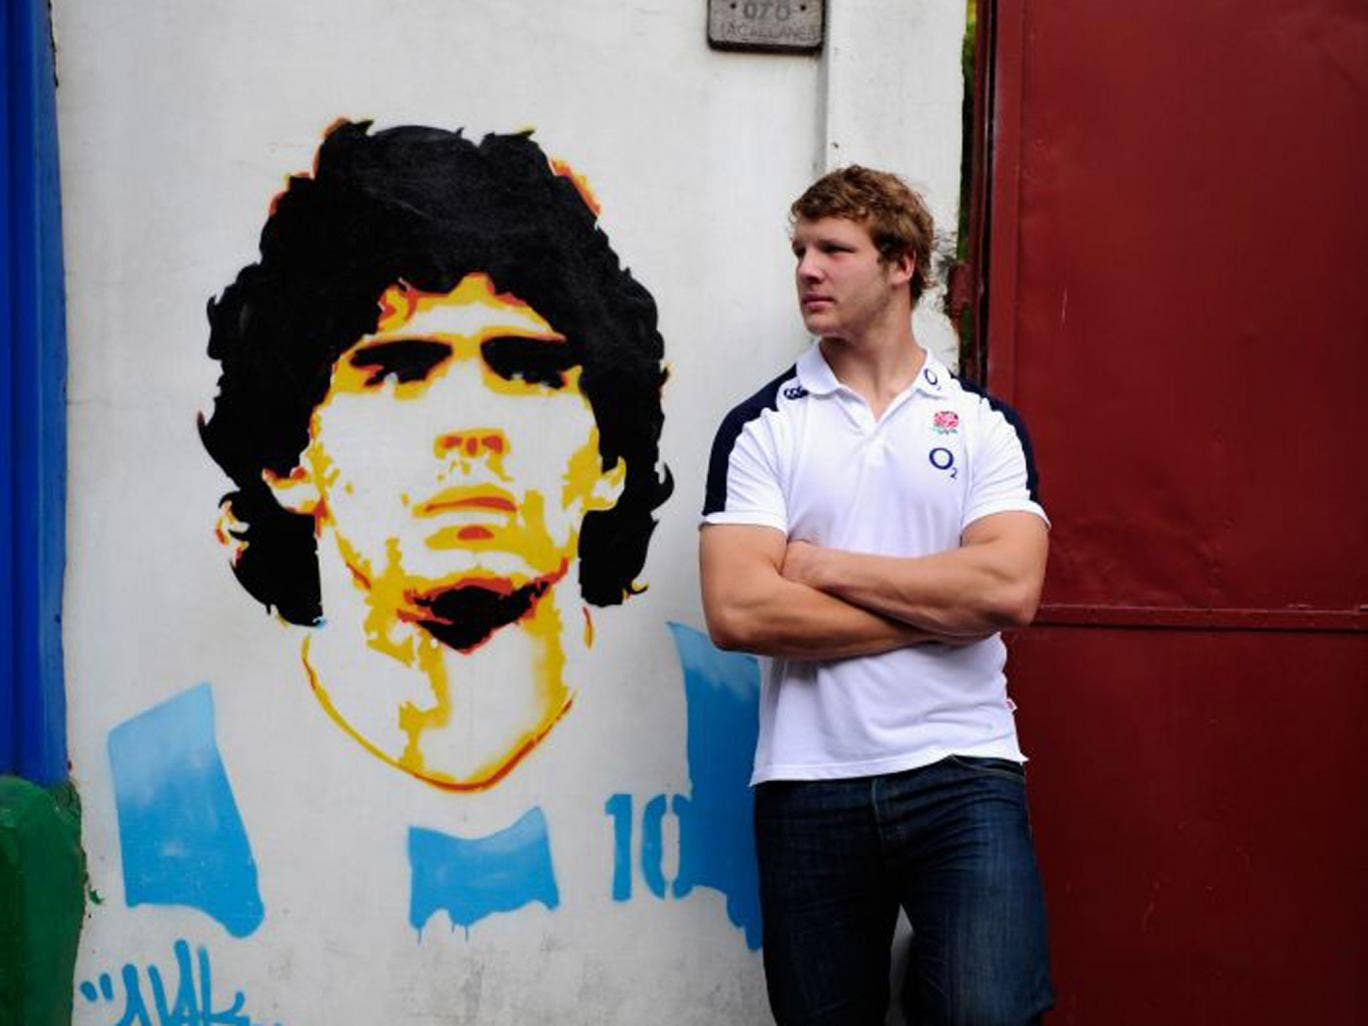 Joe Launchbury has exceeded his own expectations during a remarkable  season